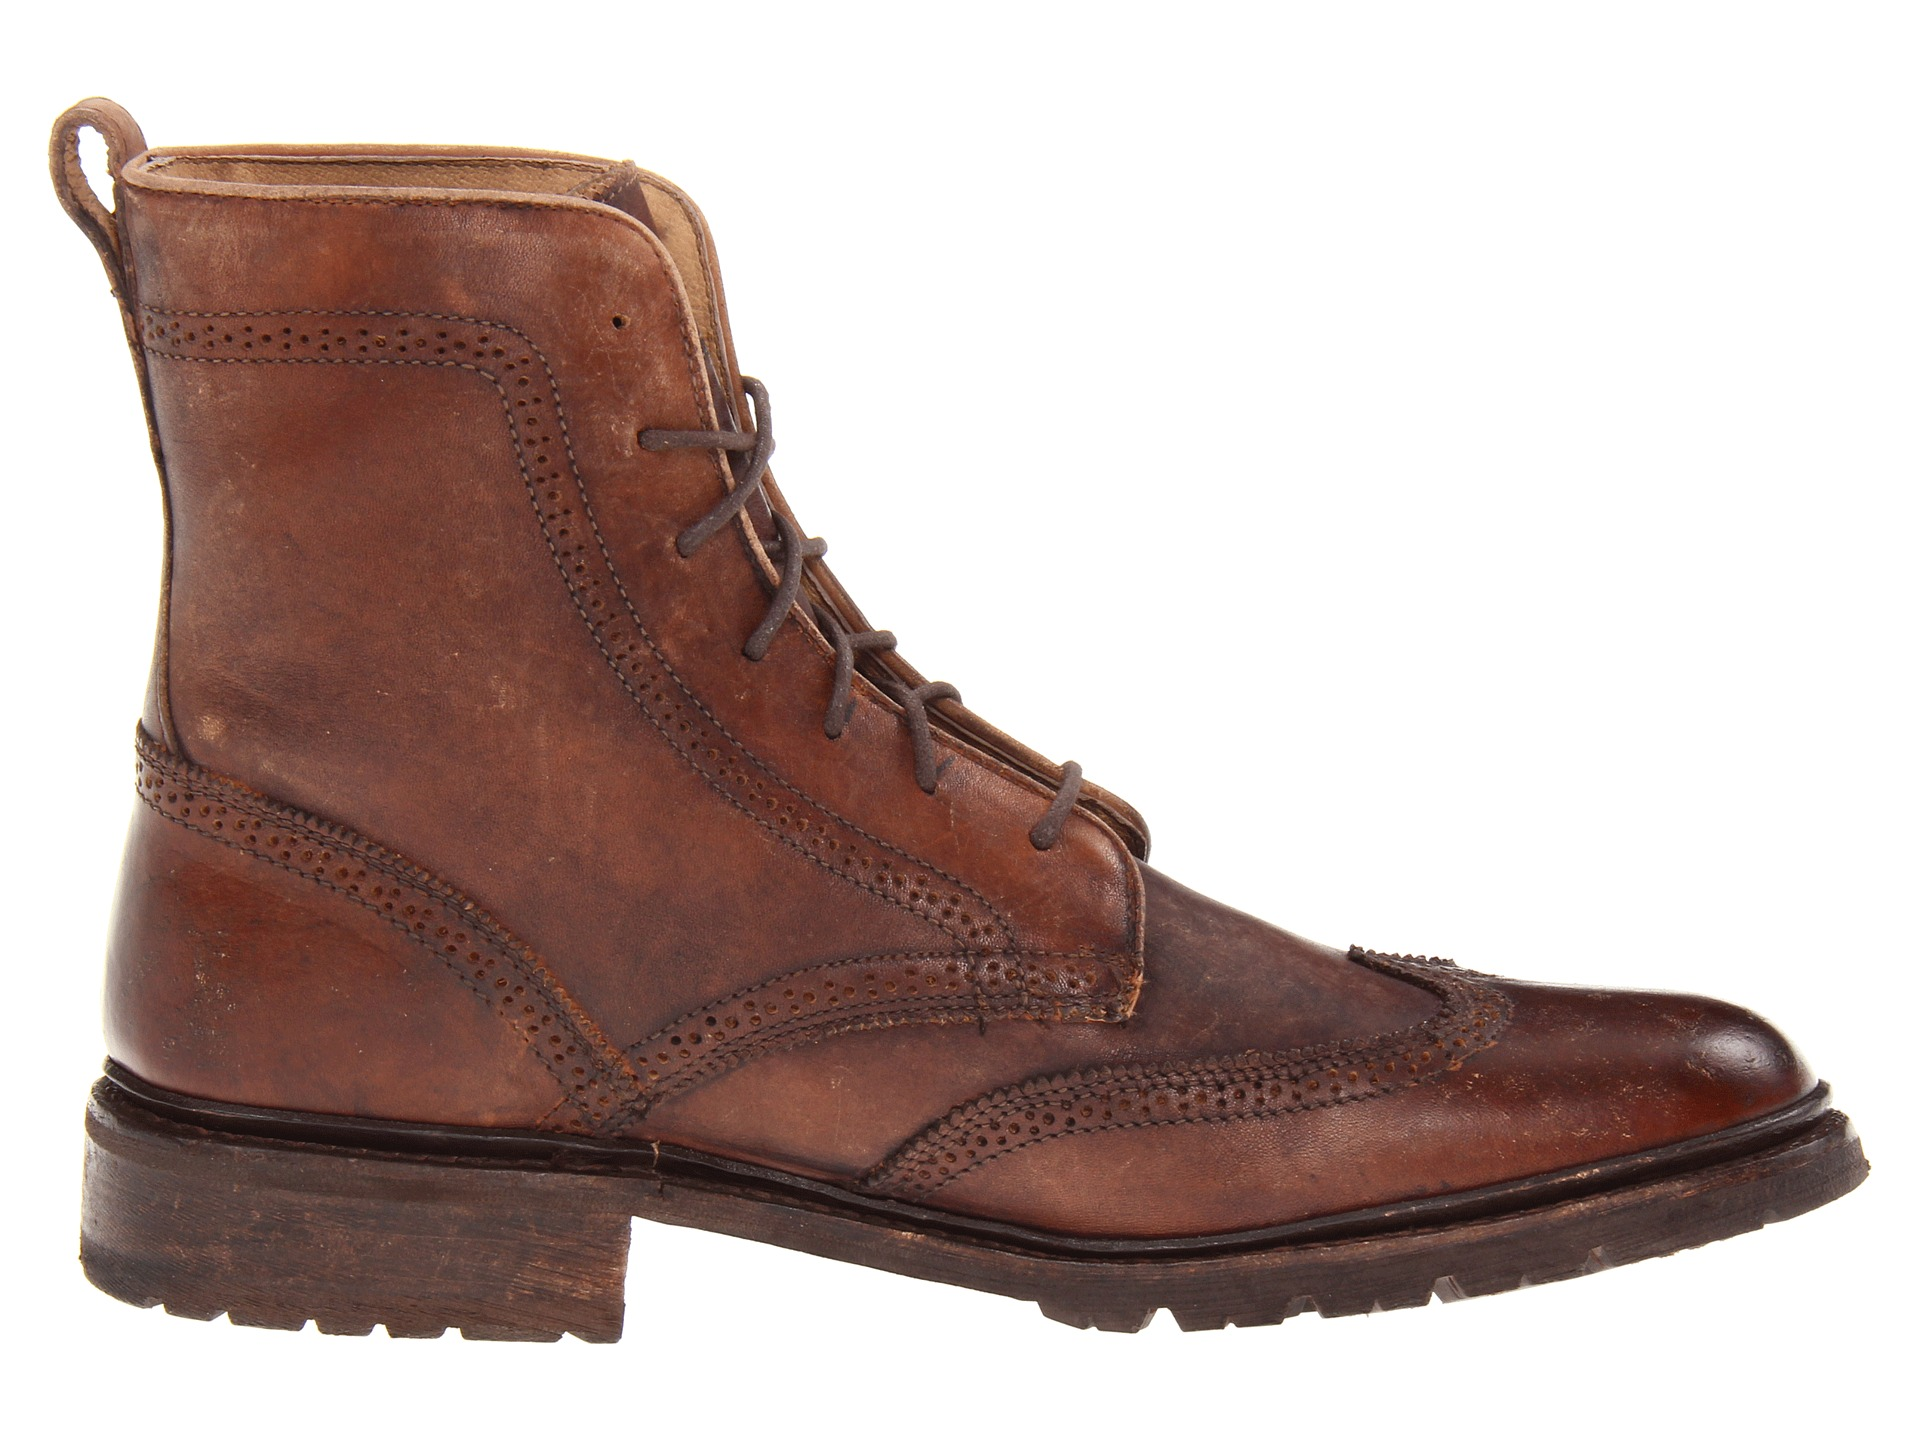 Frye Boots Sale Men Images And